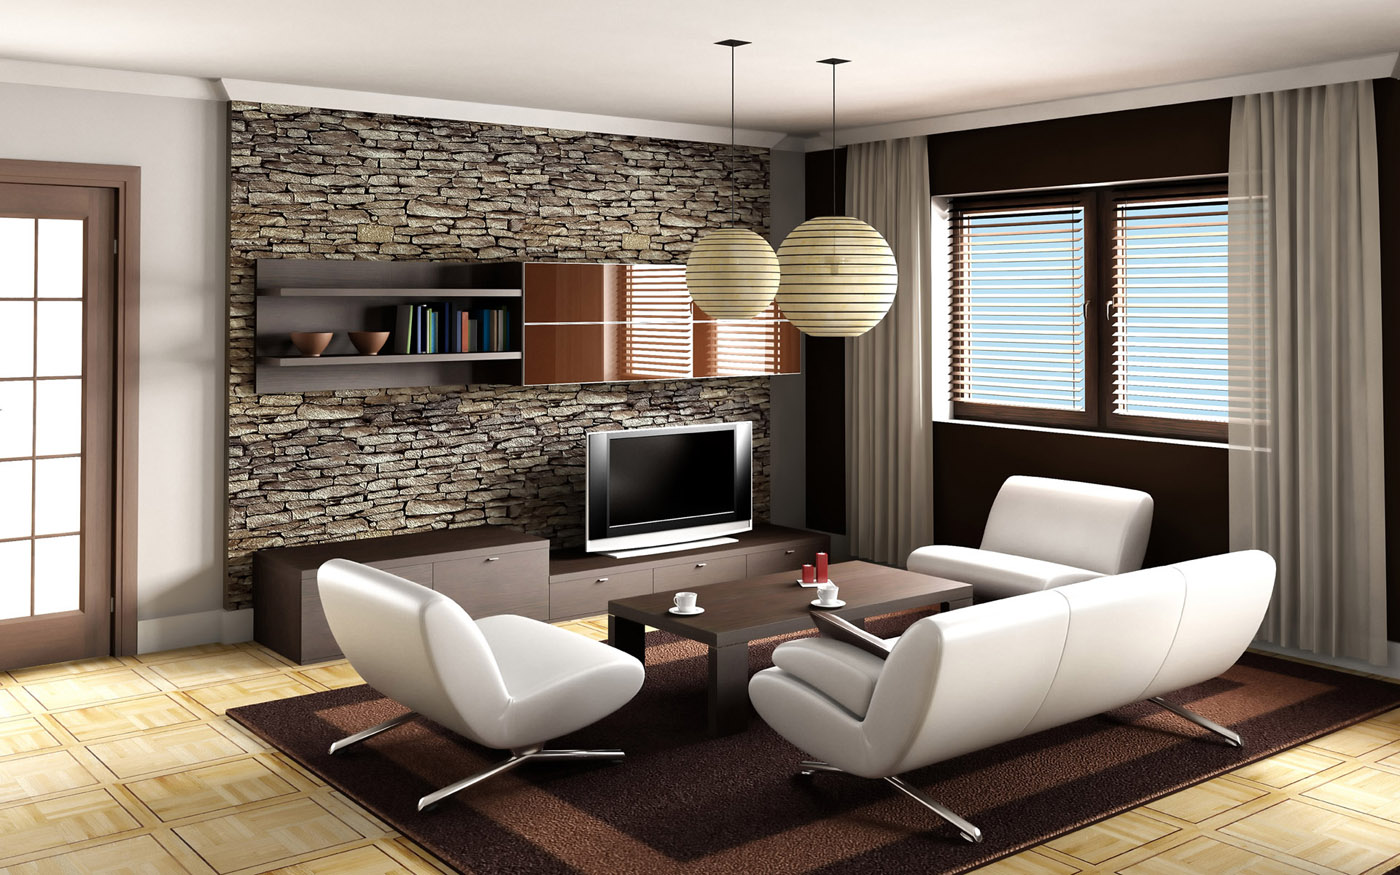 High definition living room photo 24310 - Indoor Home ...